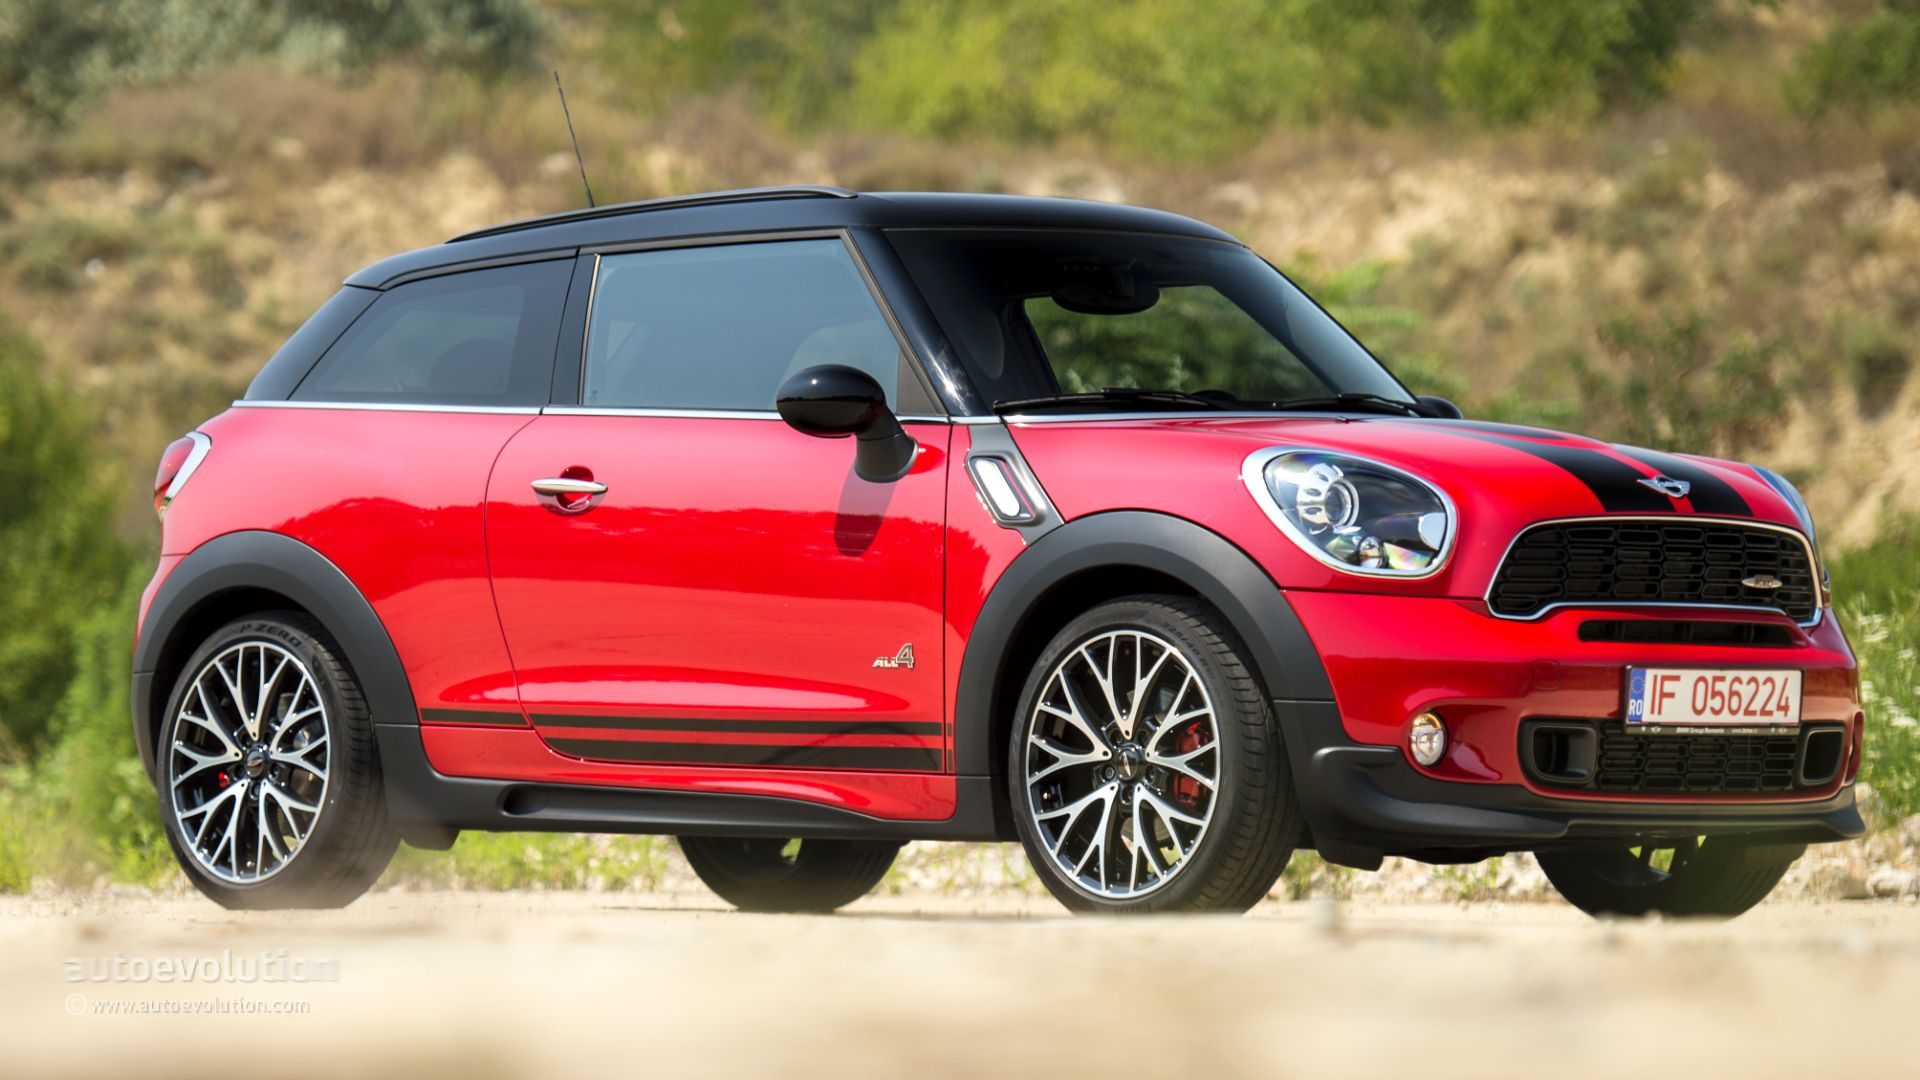 Pin By Autoevolution On Test Drive Adventures Mini Paceman John